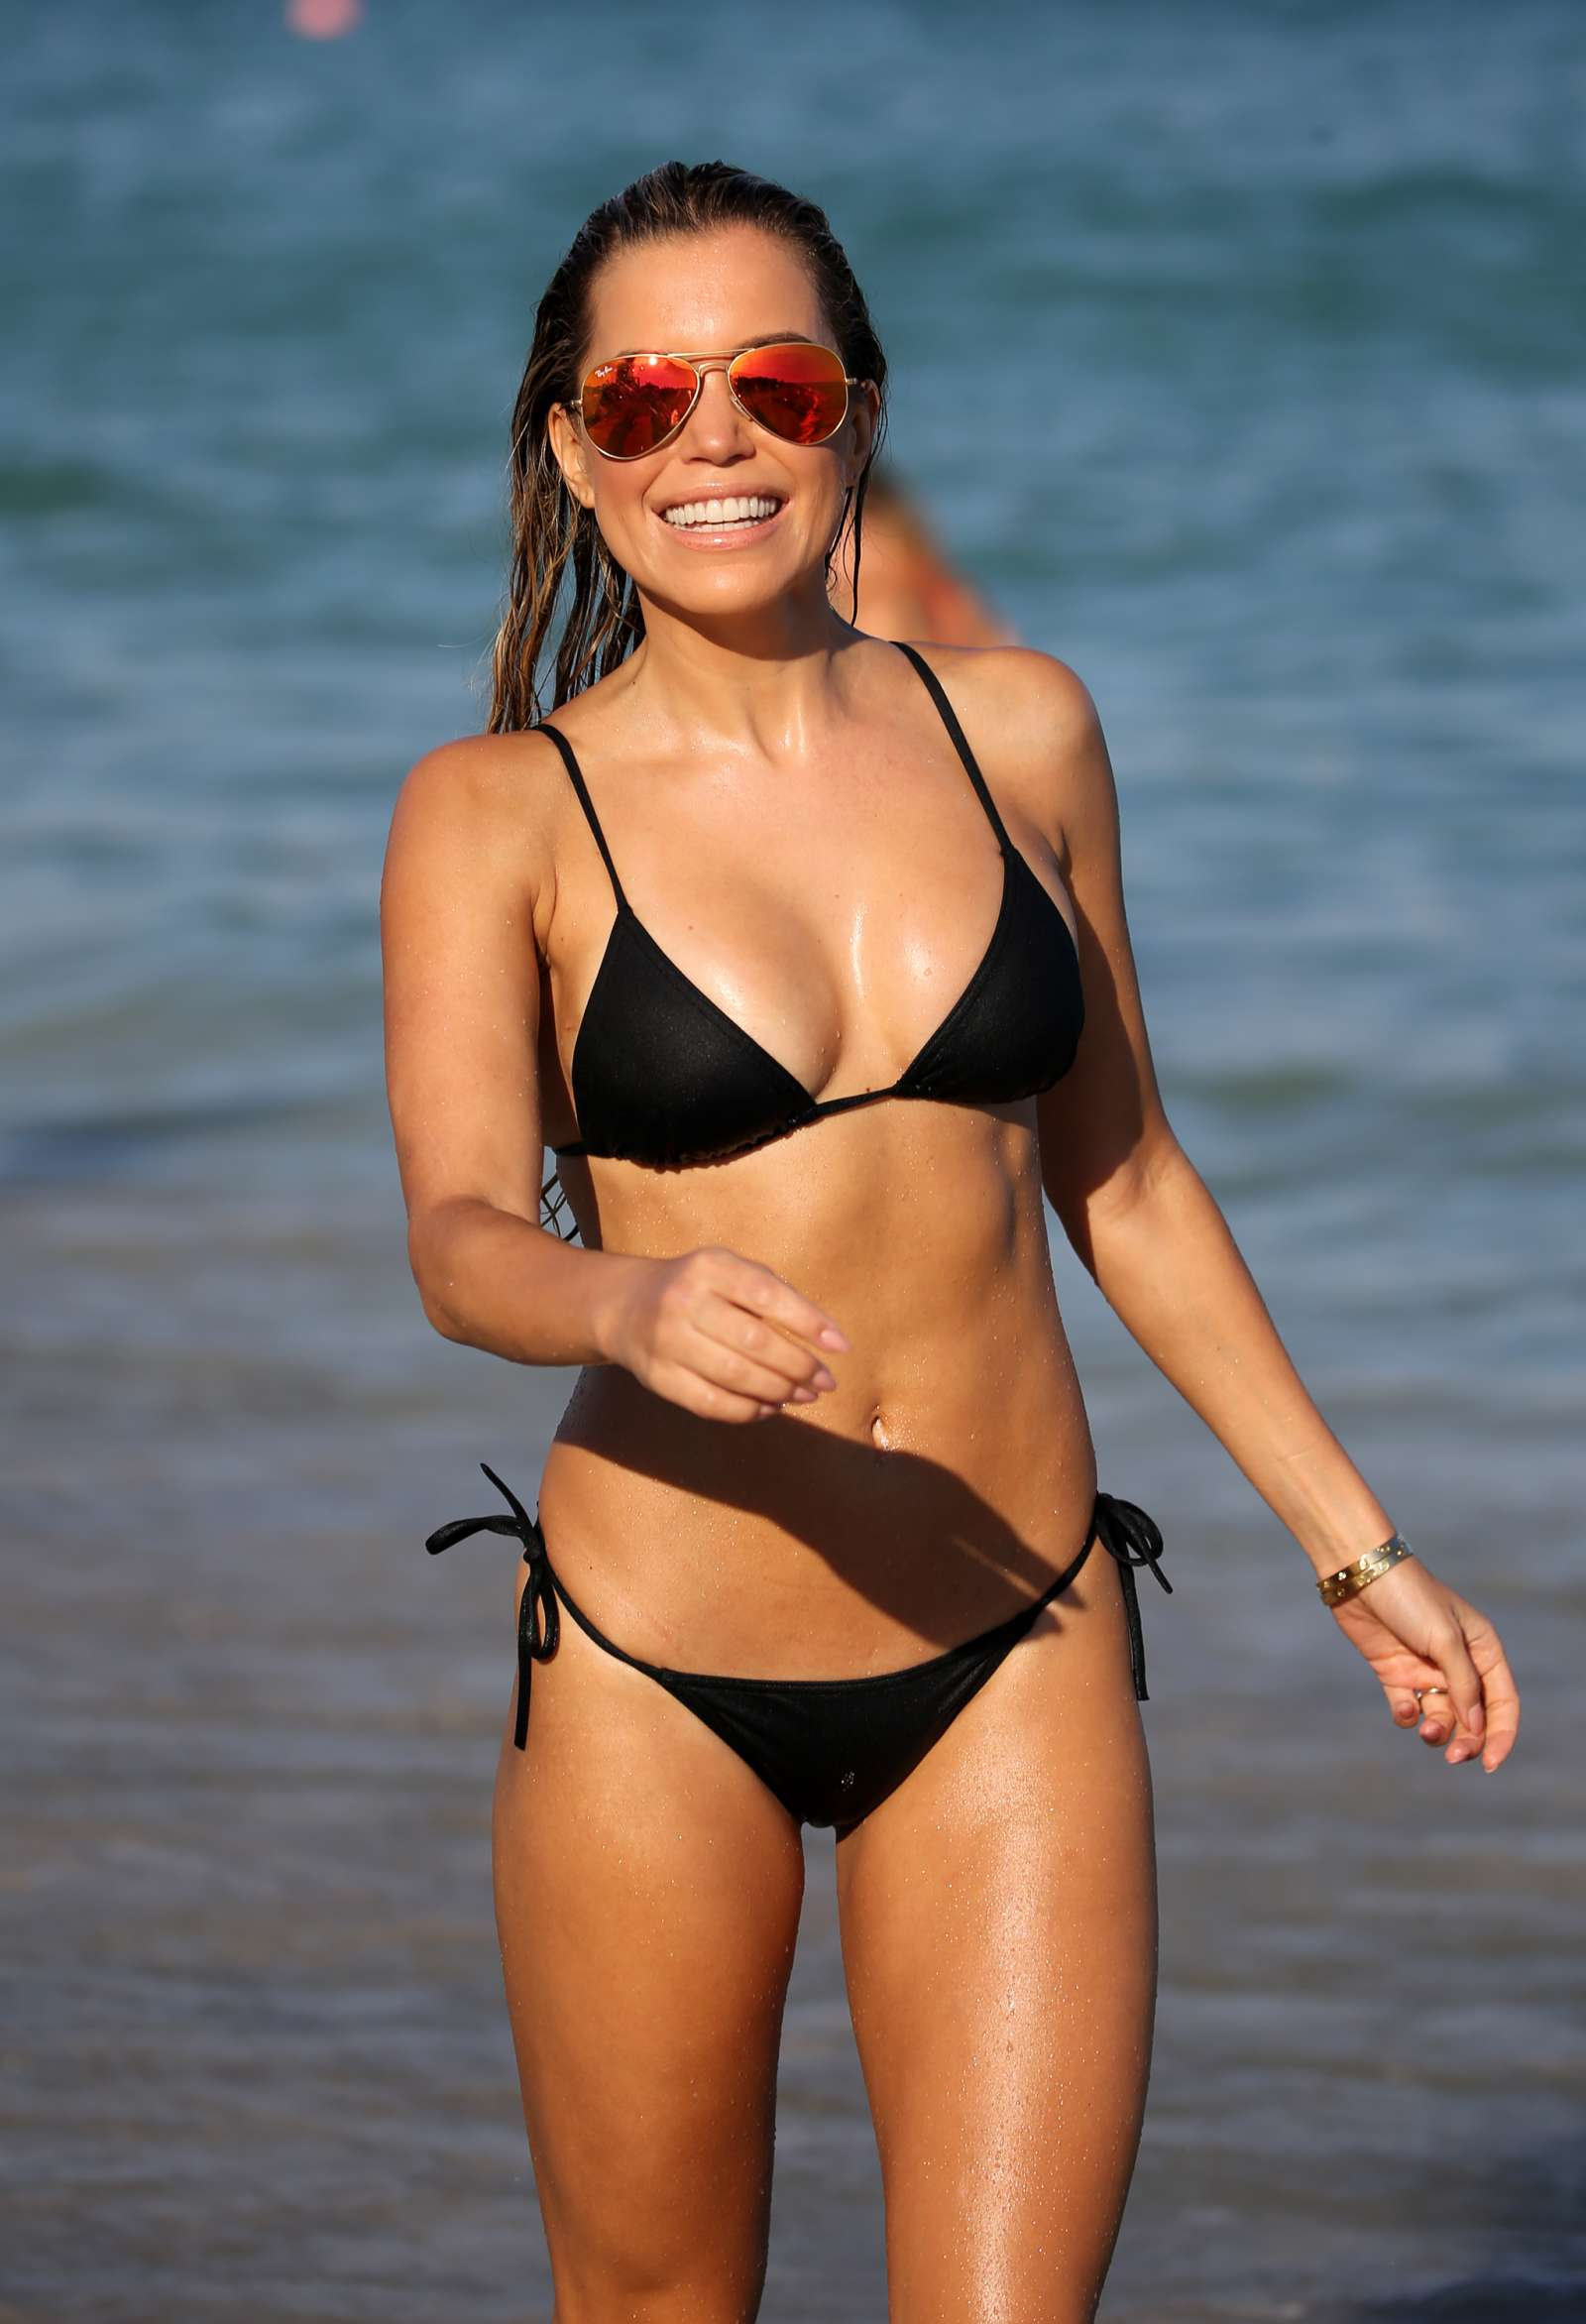 sylvie meis in black bikini on the beach in miami indian girls villa celebs beauty fashion. Black Bedroom Furniture Sets. Home Design Ideas